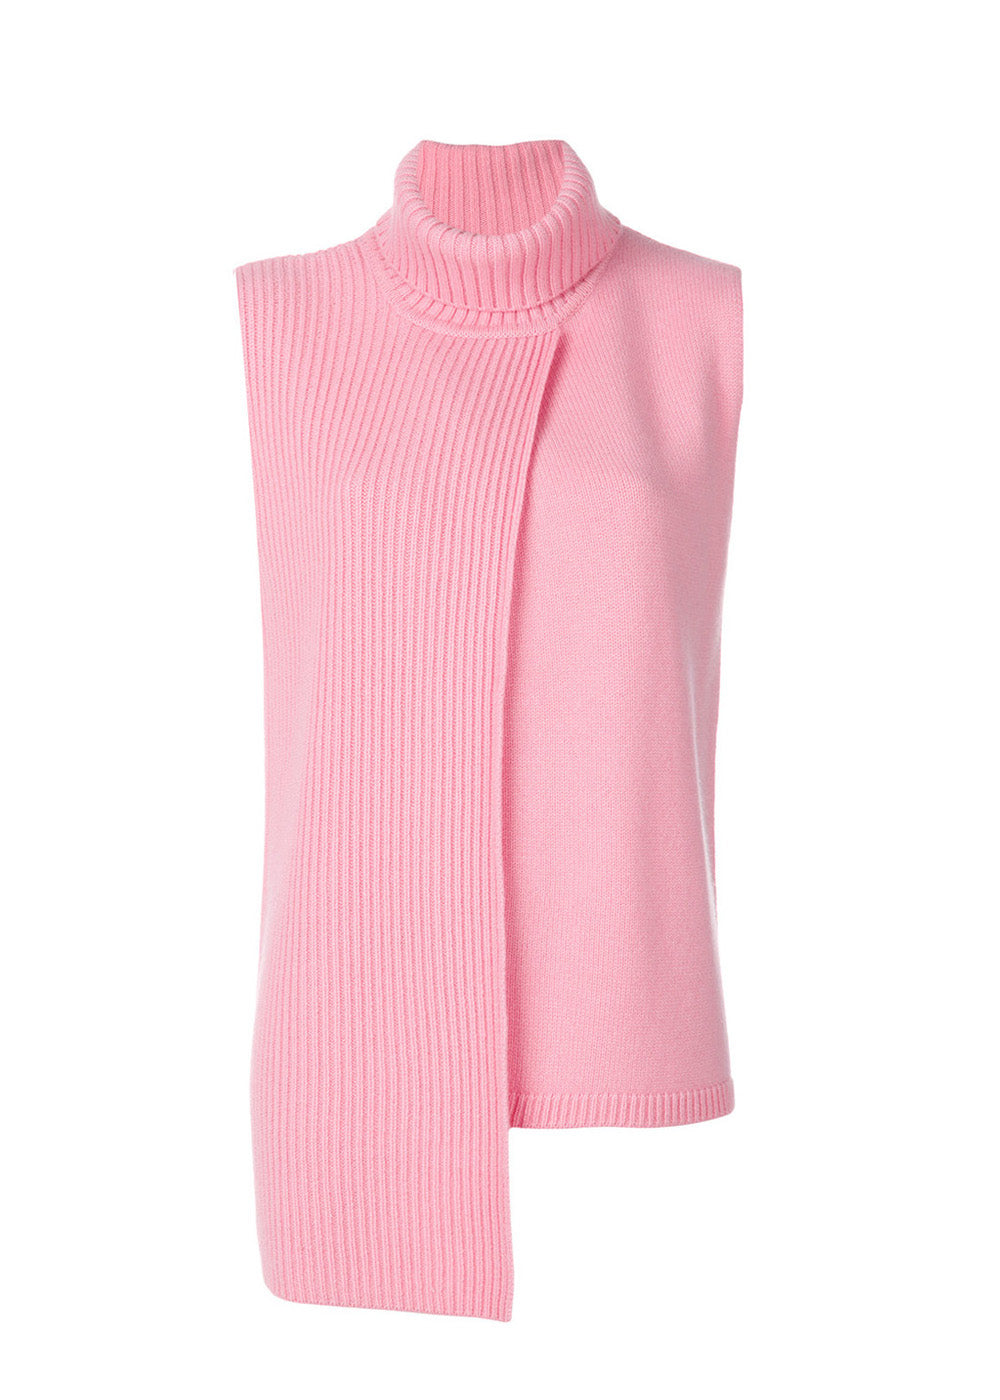 Pink rib cage sweater vests francis investments llc